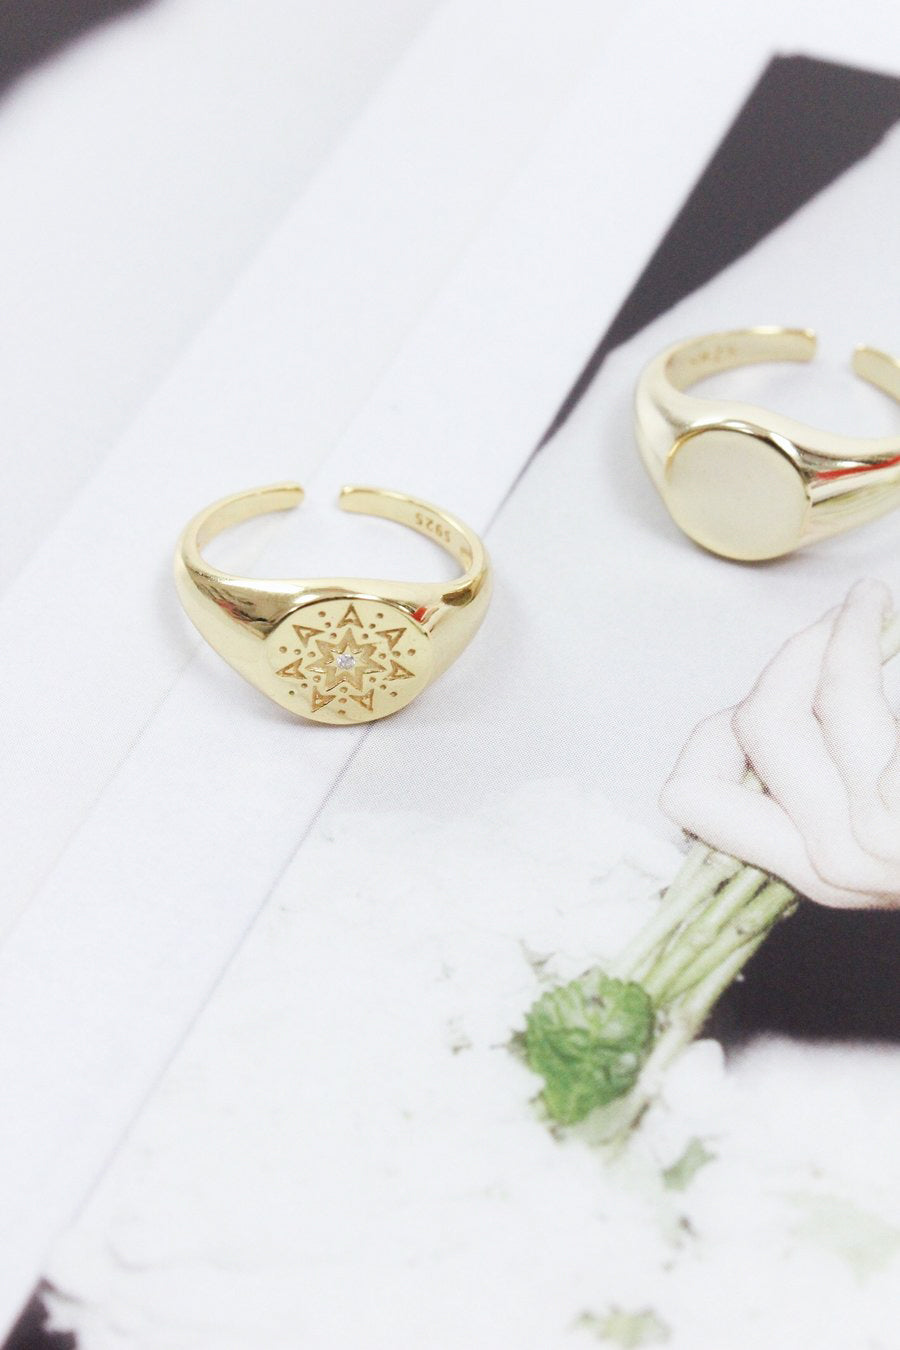 CLASSIC GOLD SIGNET RING - Halite Clothing